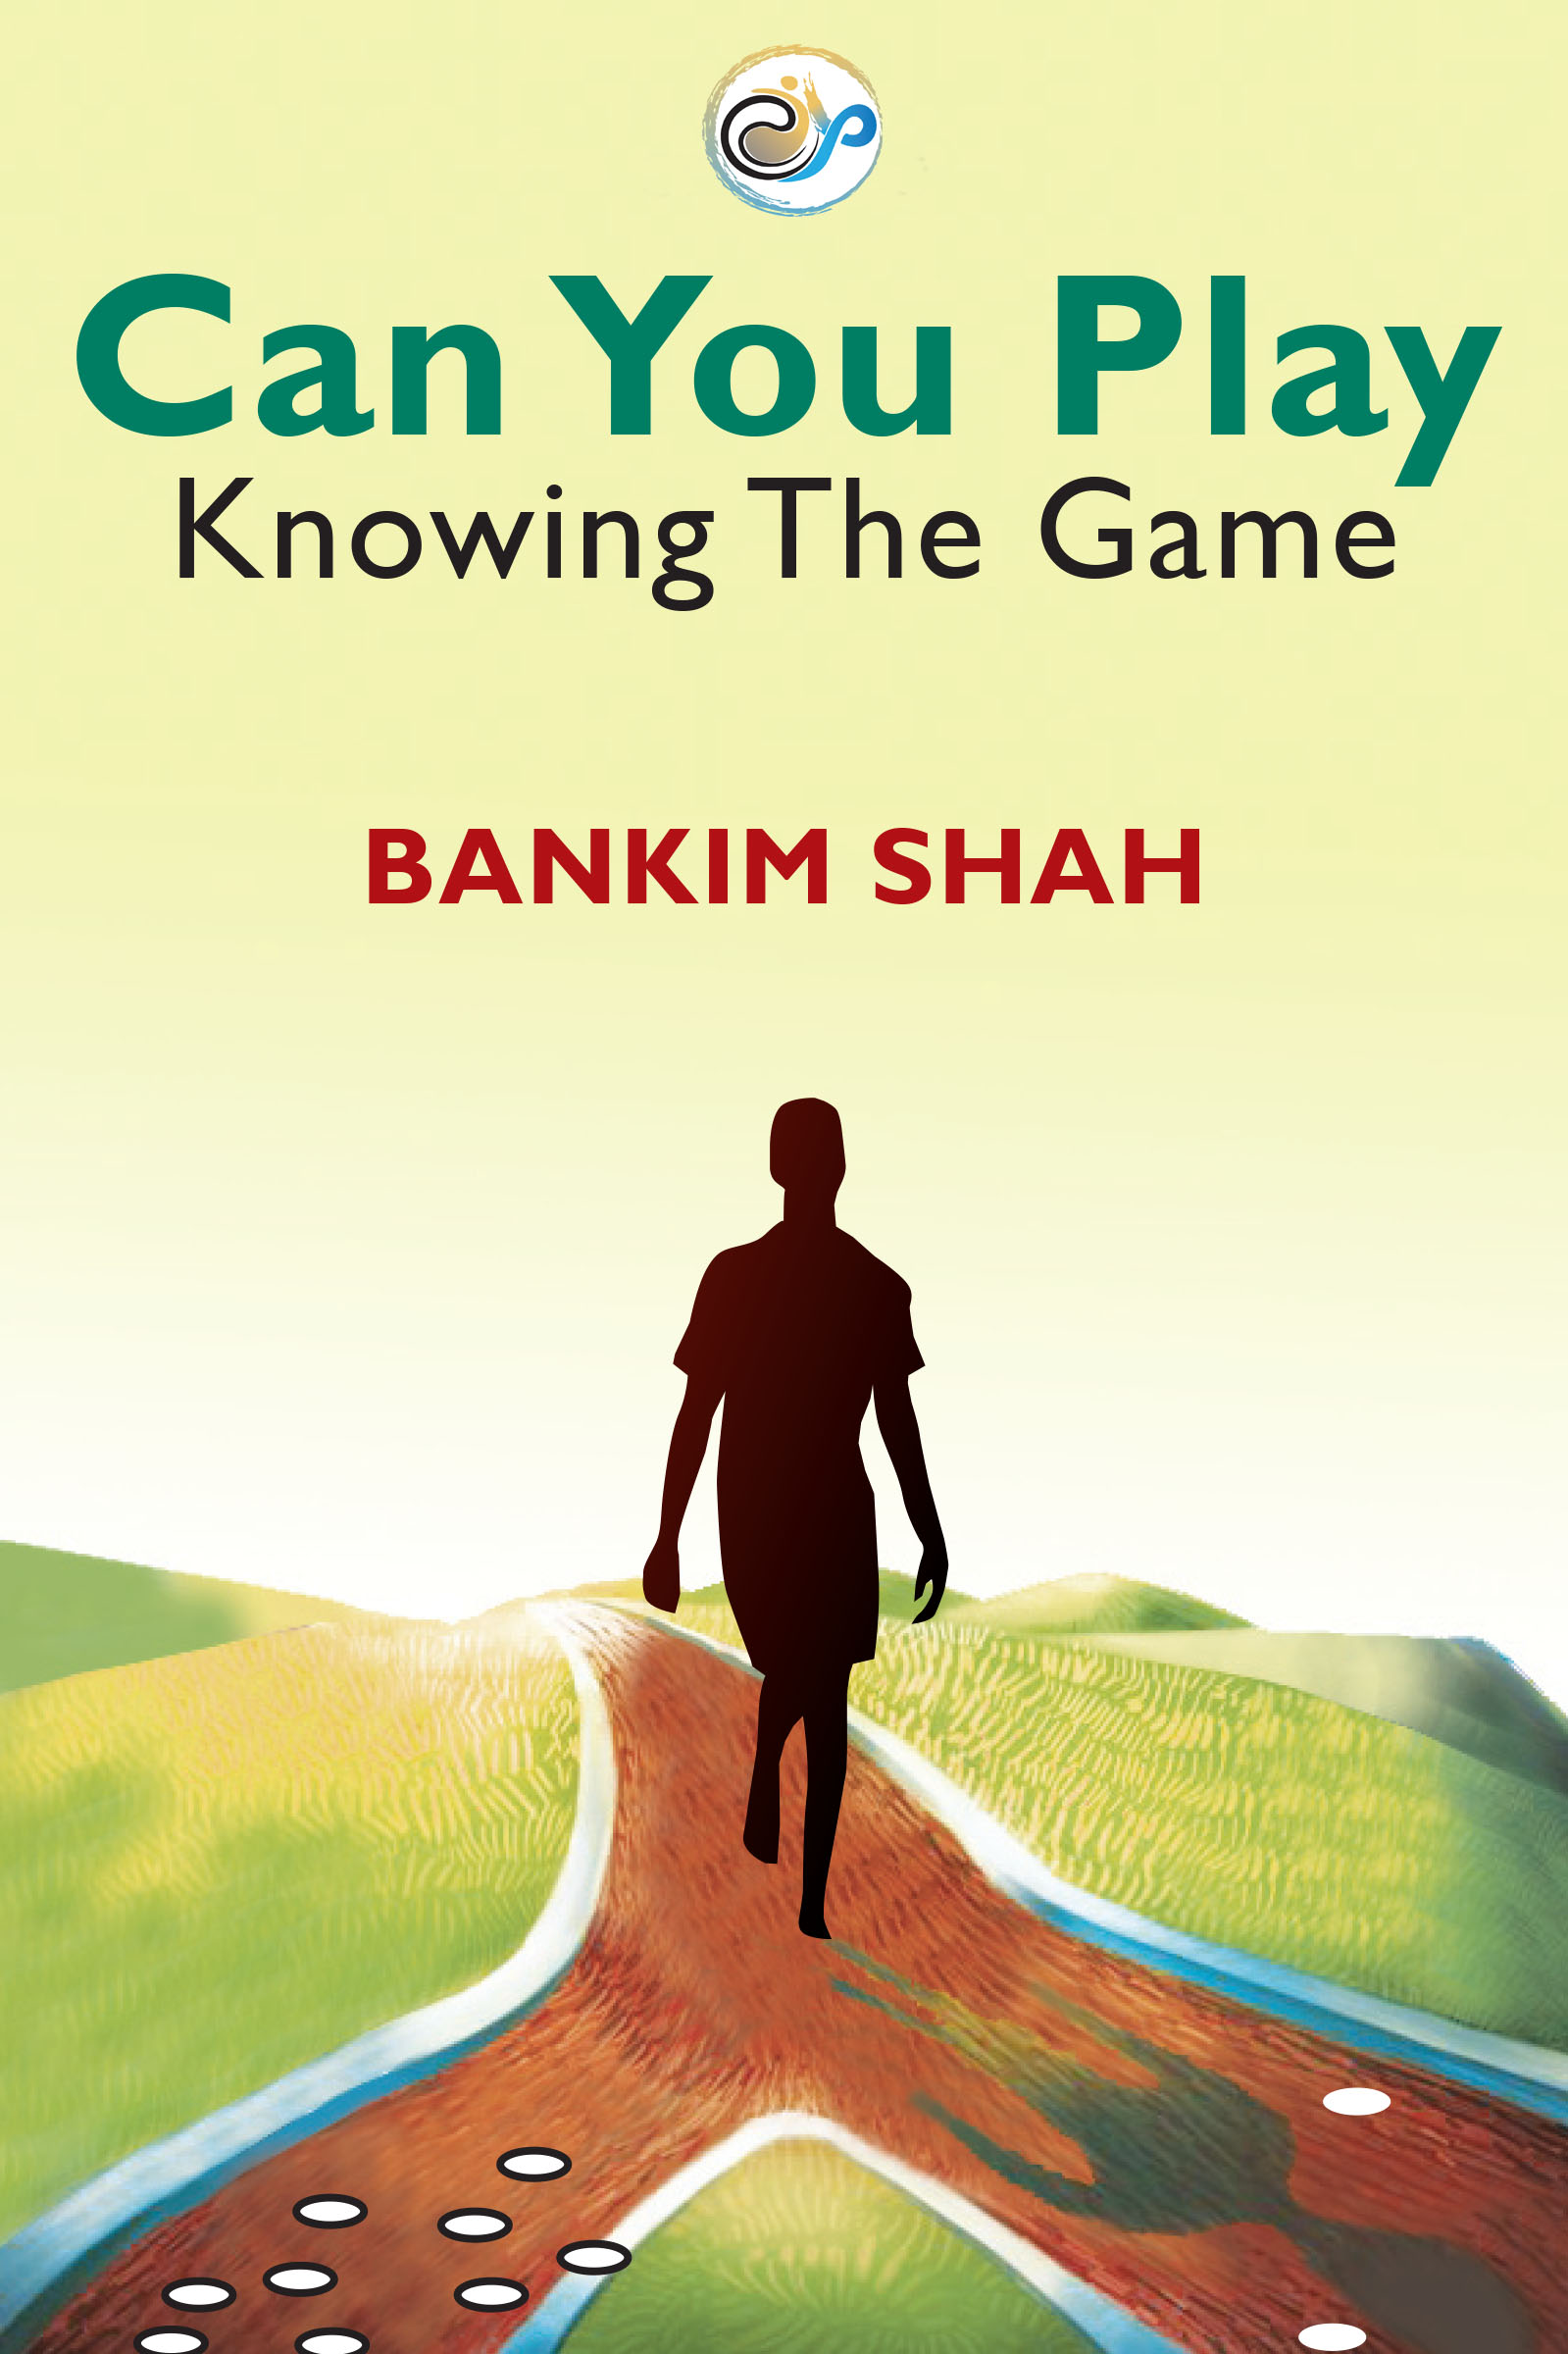 Can You Play – Knowing the Game